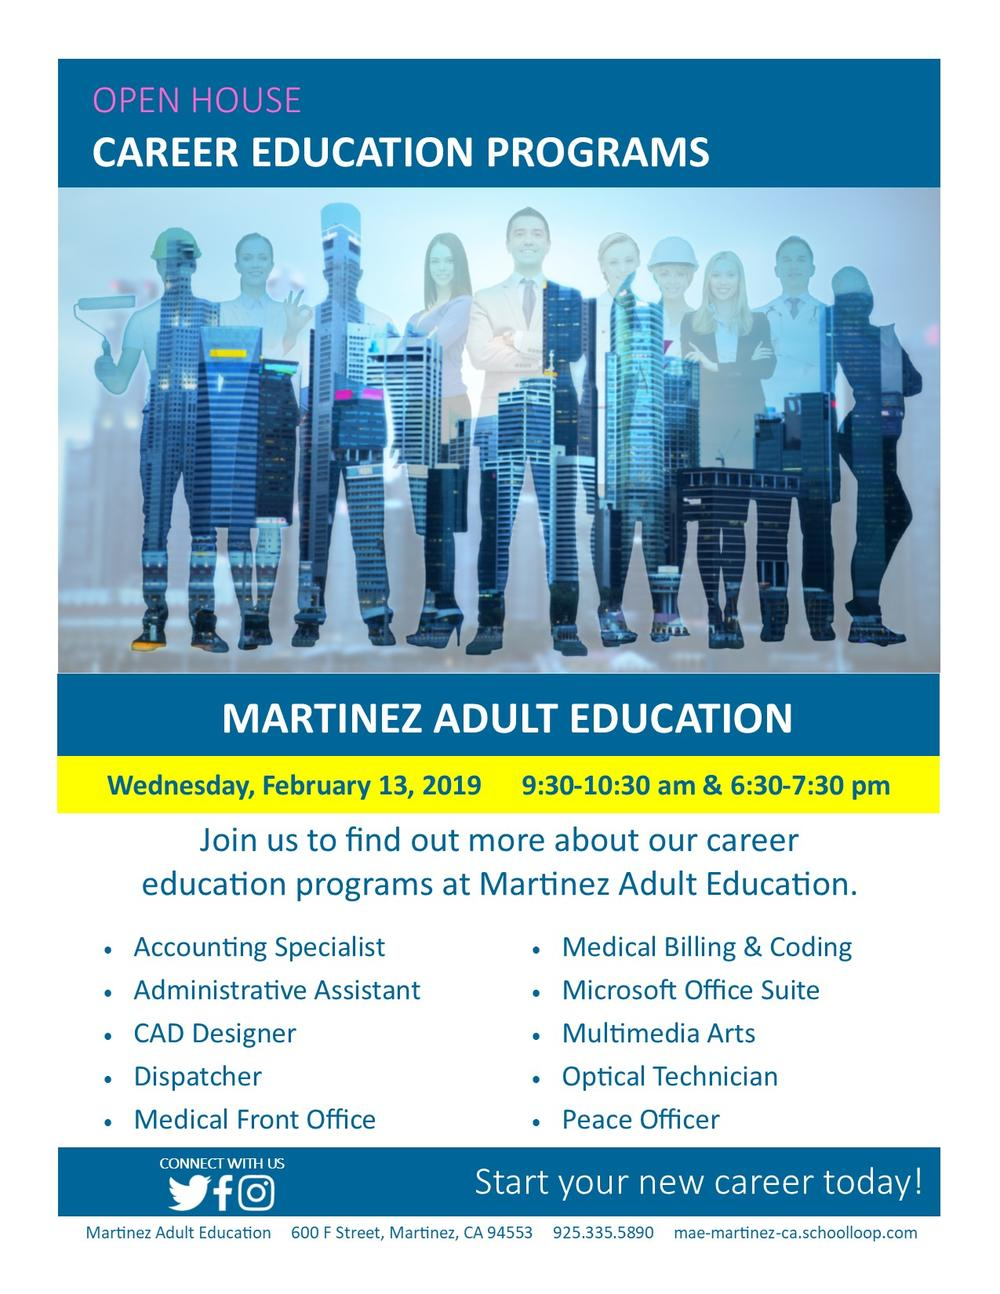 Open House Career Education Programs